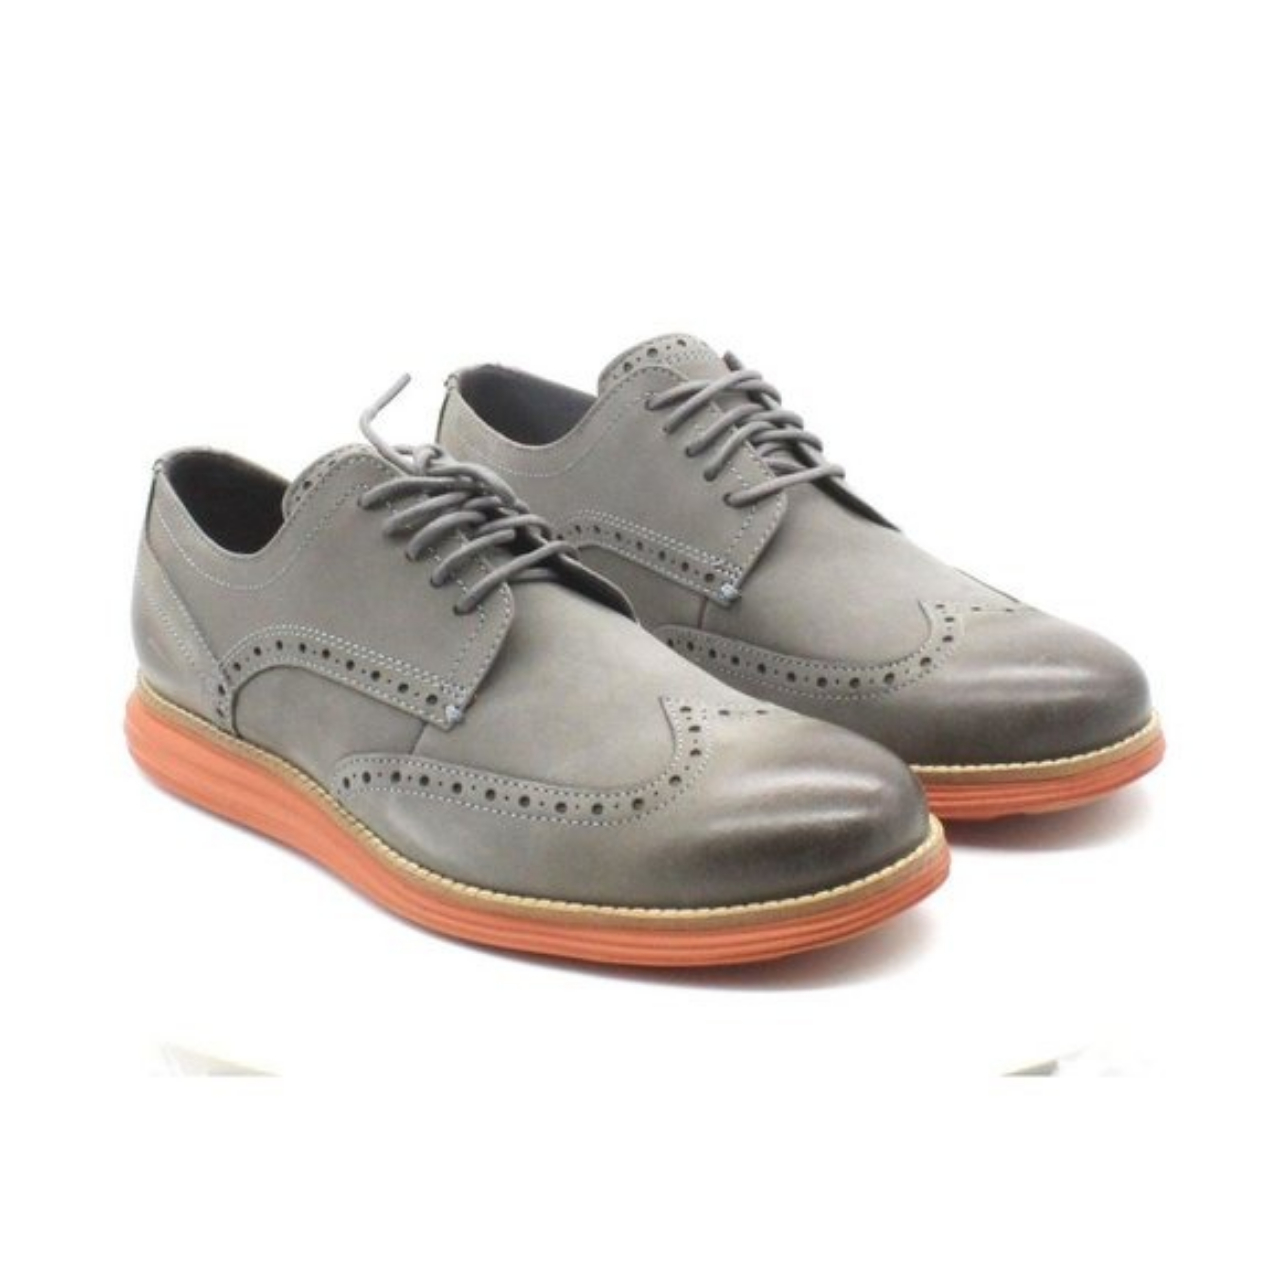 Product Image 1 - Cole Haan Men's W-Width Oxford  Crafted